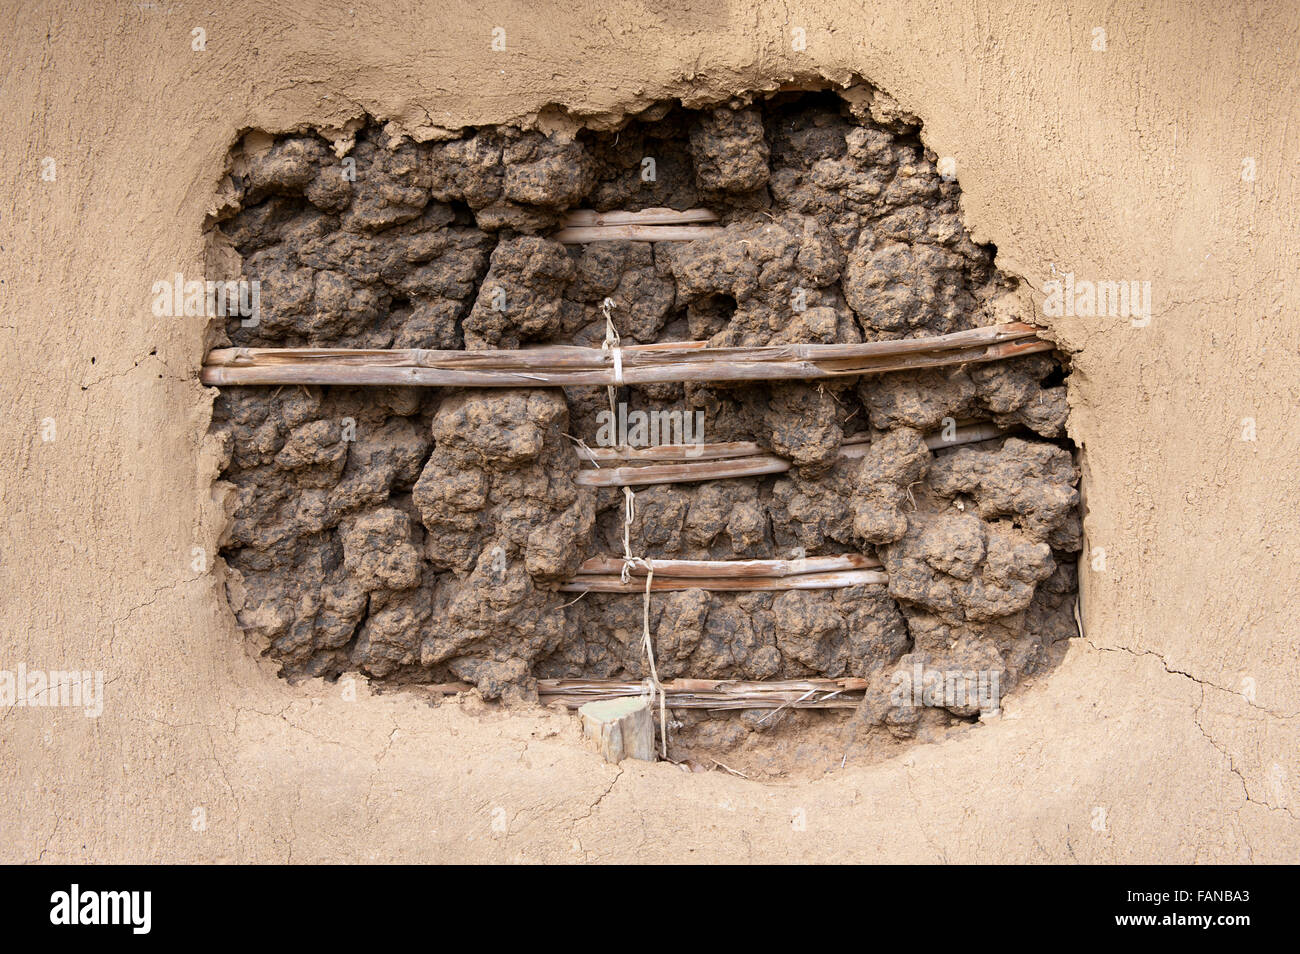 Weave and wattle in the wall of a traditional Kenyan home made from mud. - Stock Image